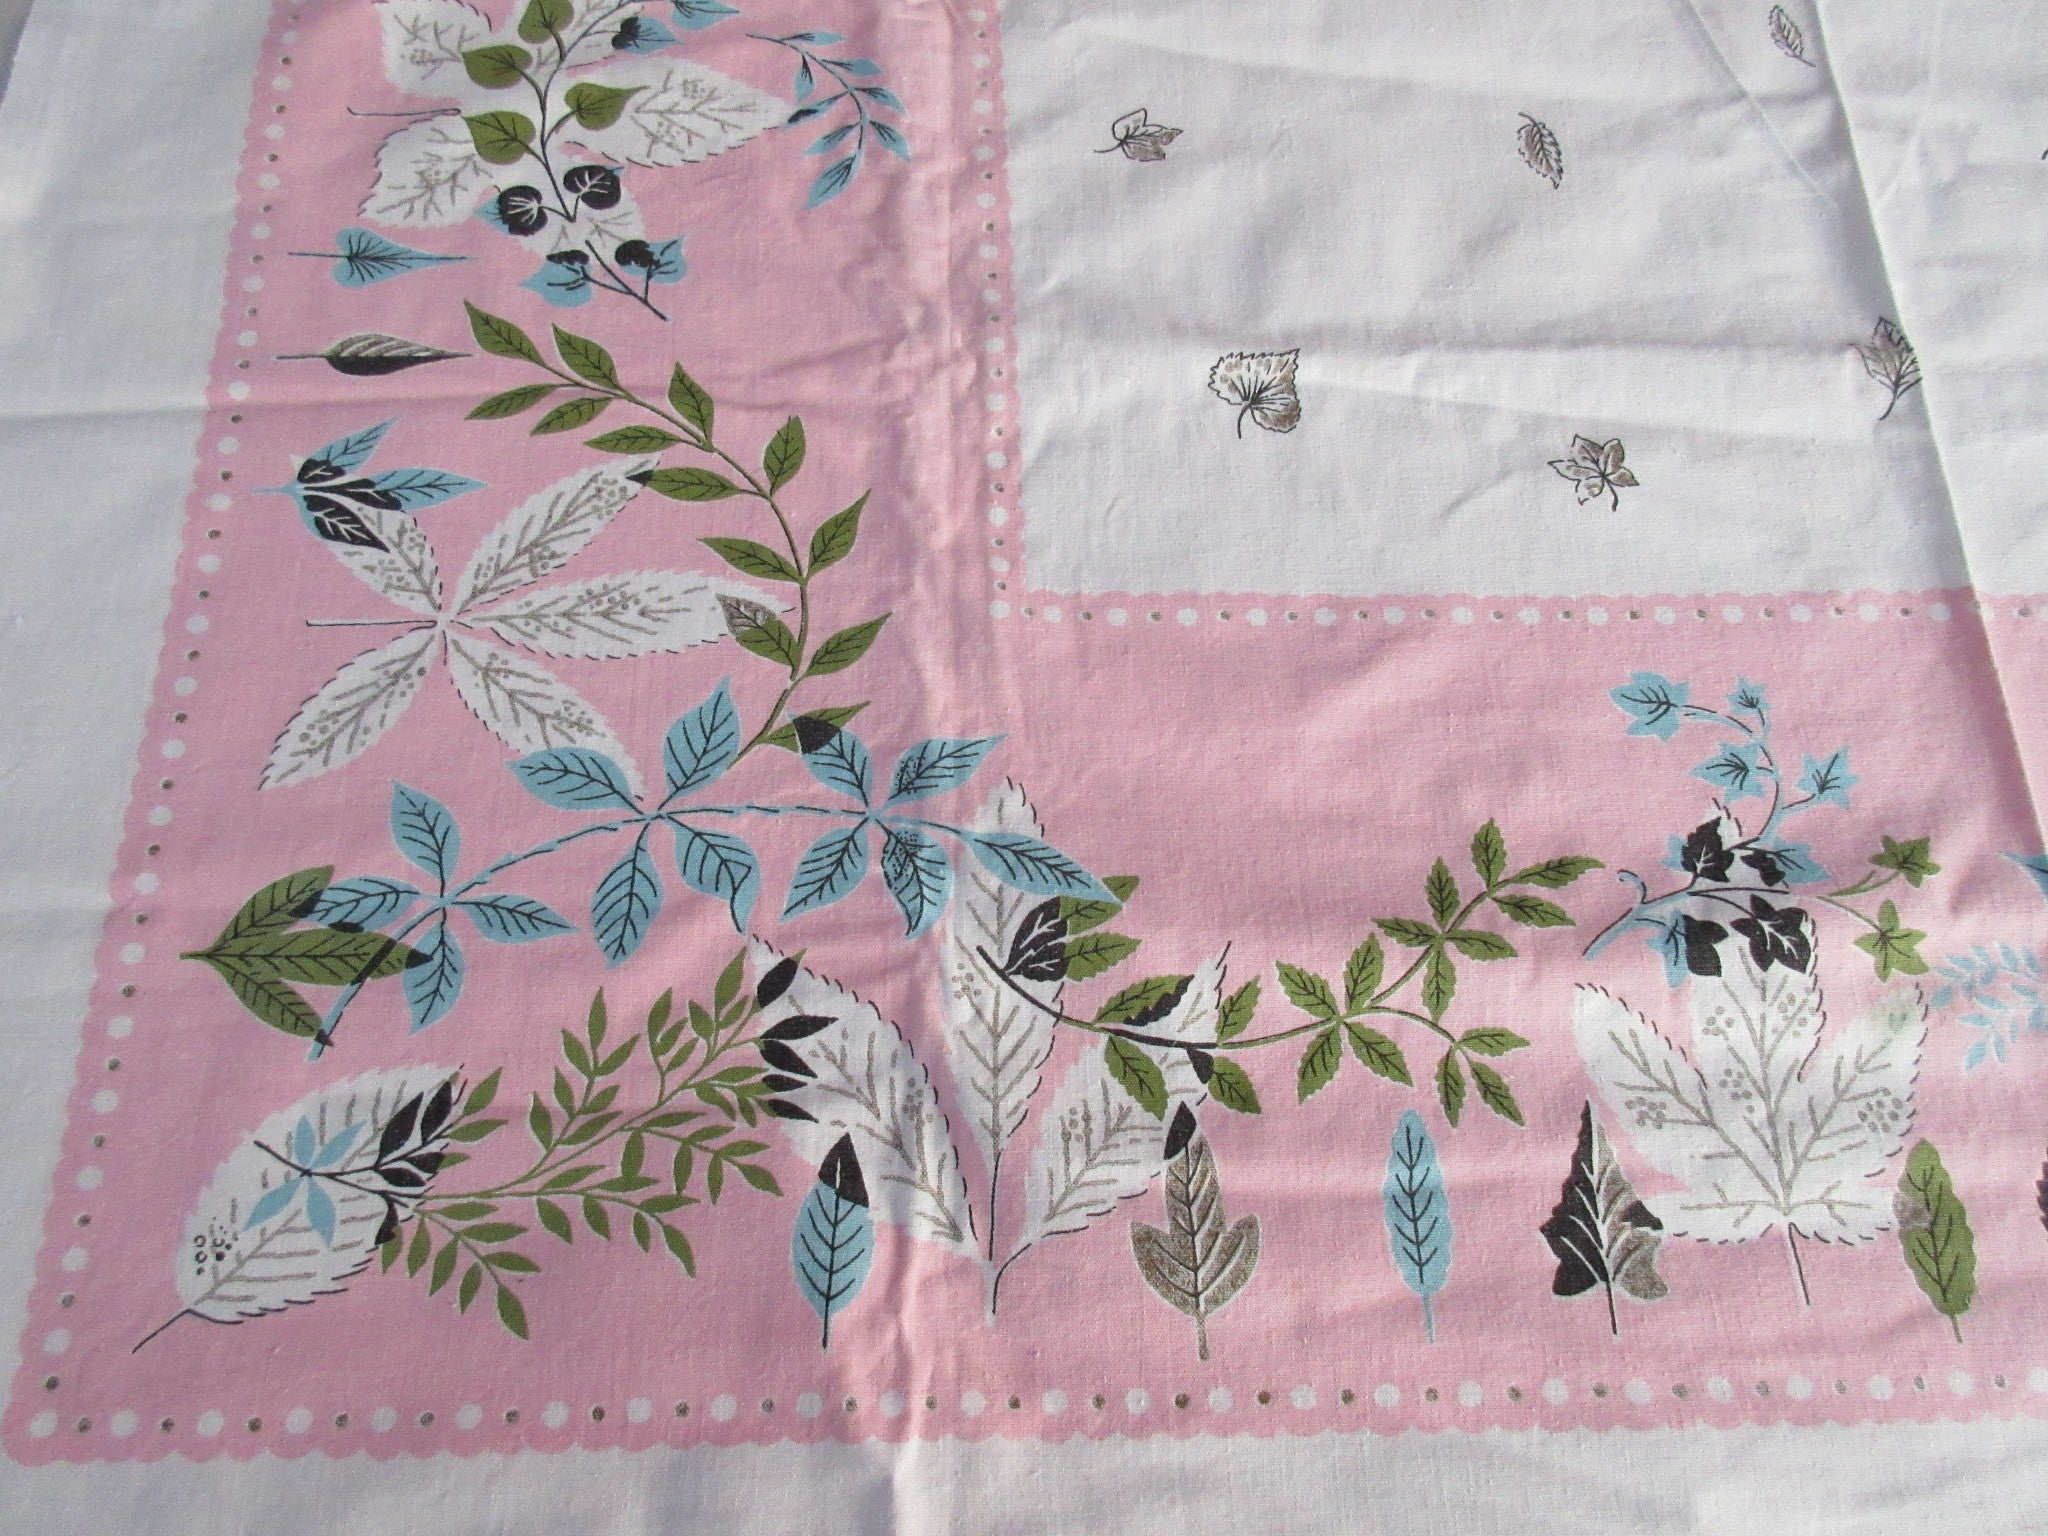 Leaves on Pink Cutter? Novelty Vintage Printed Tablecloth (49 X 45)